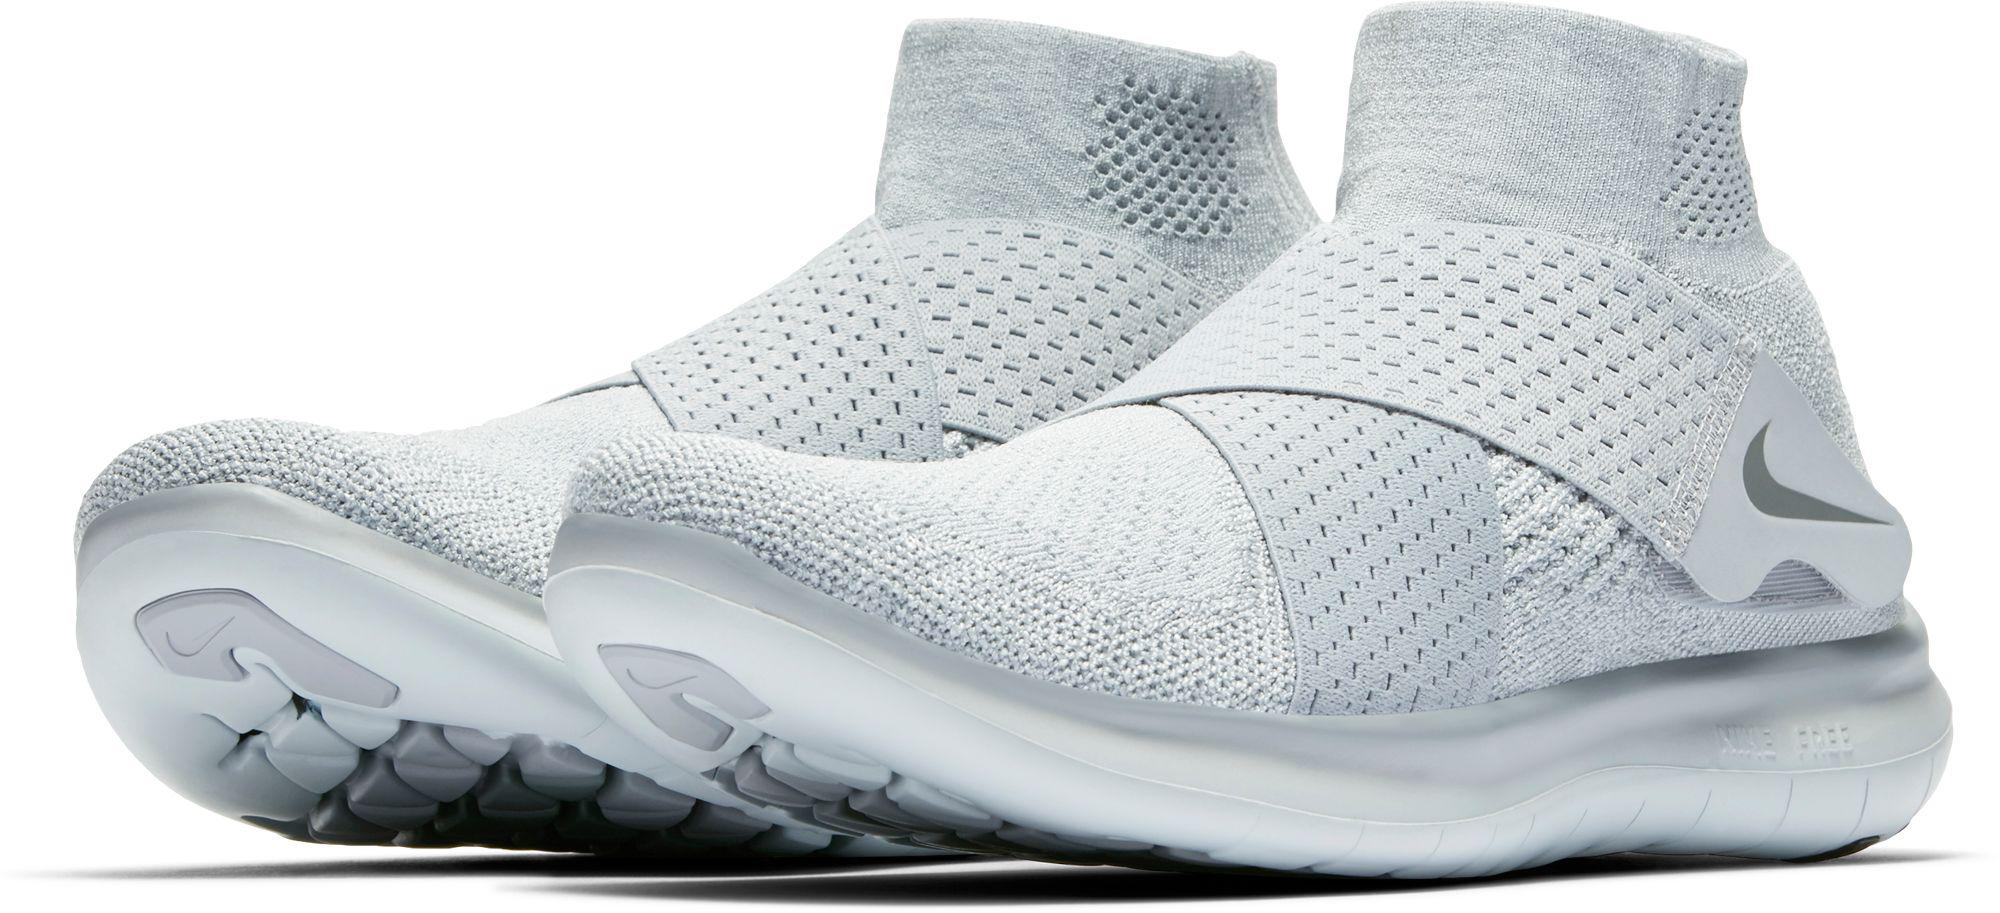 ad99f5a08f095 Lyst - Nike Free Rn Motion Flyknit 2 Running Shoes in Gray for Men